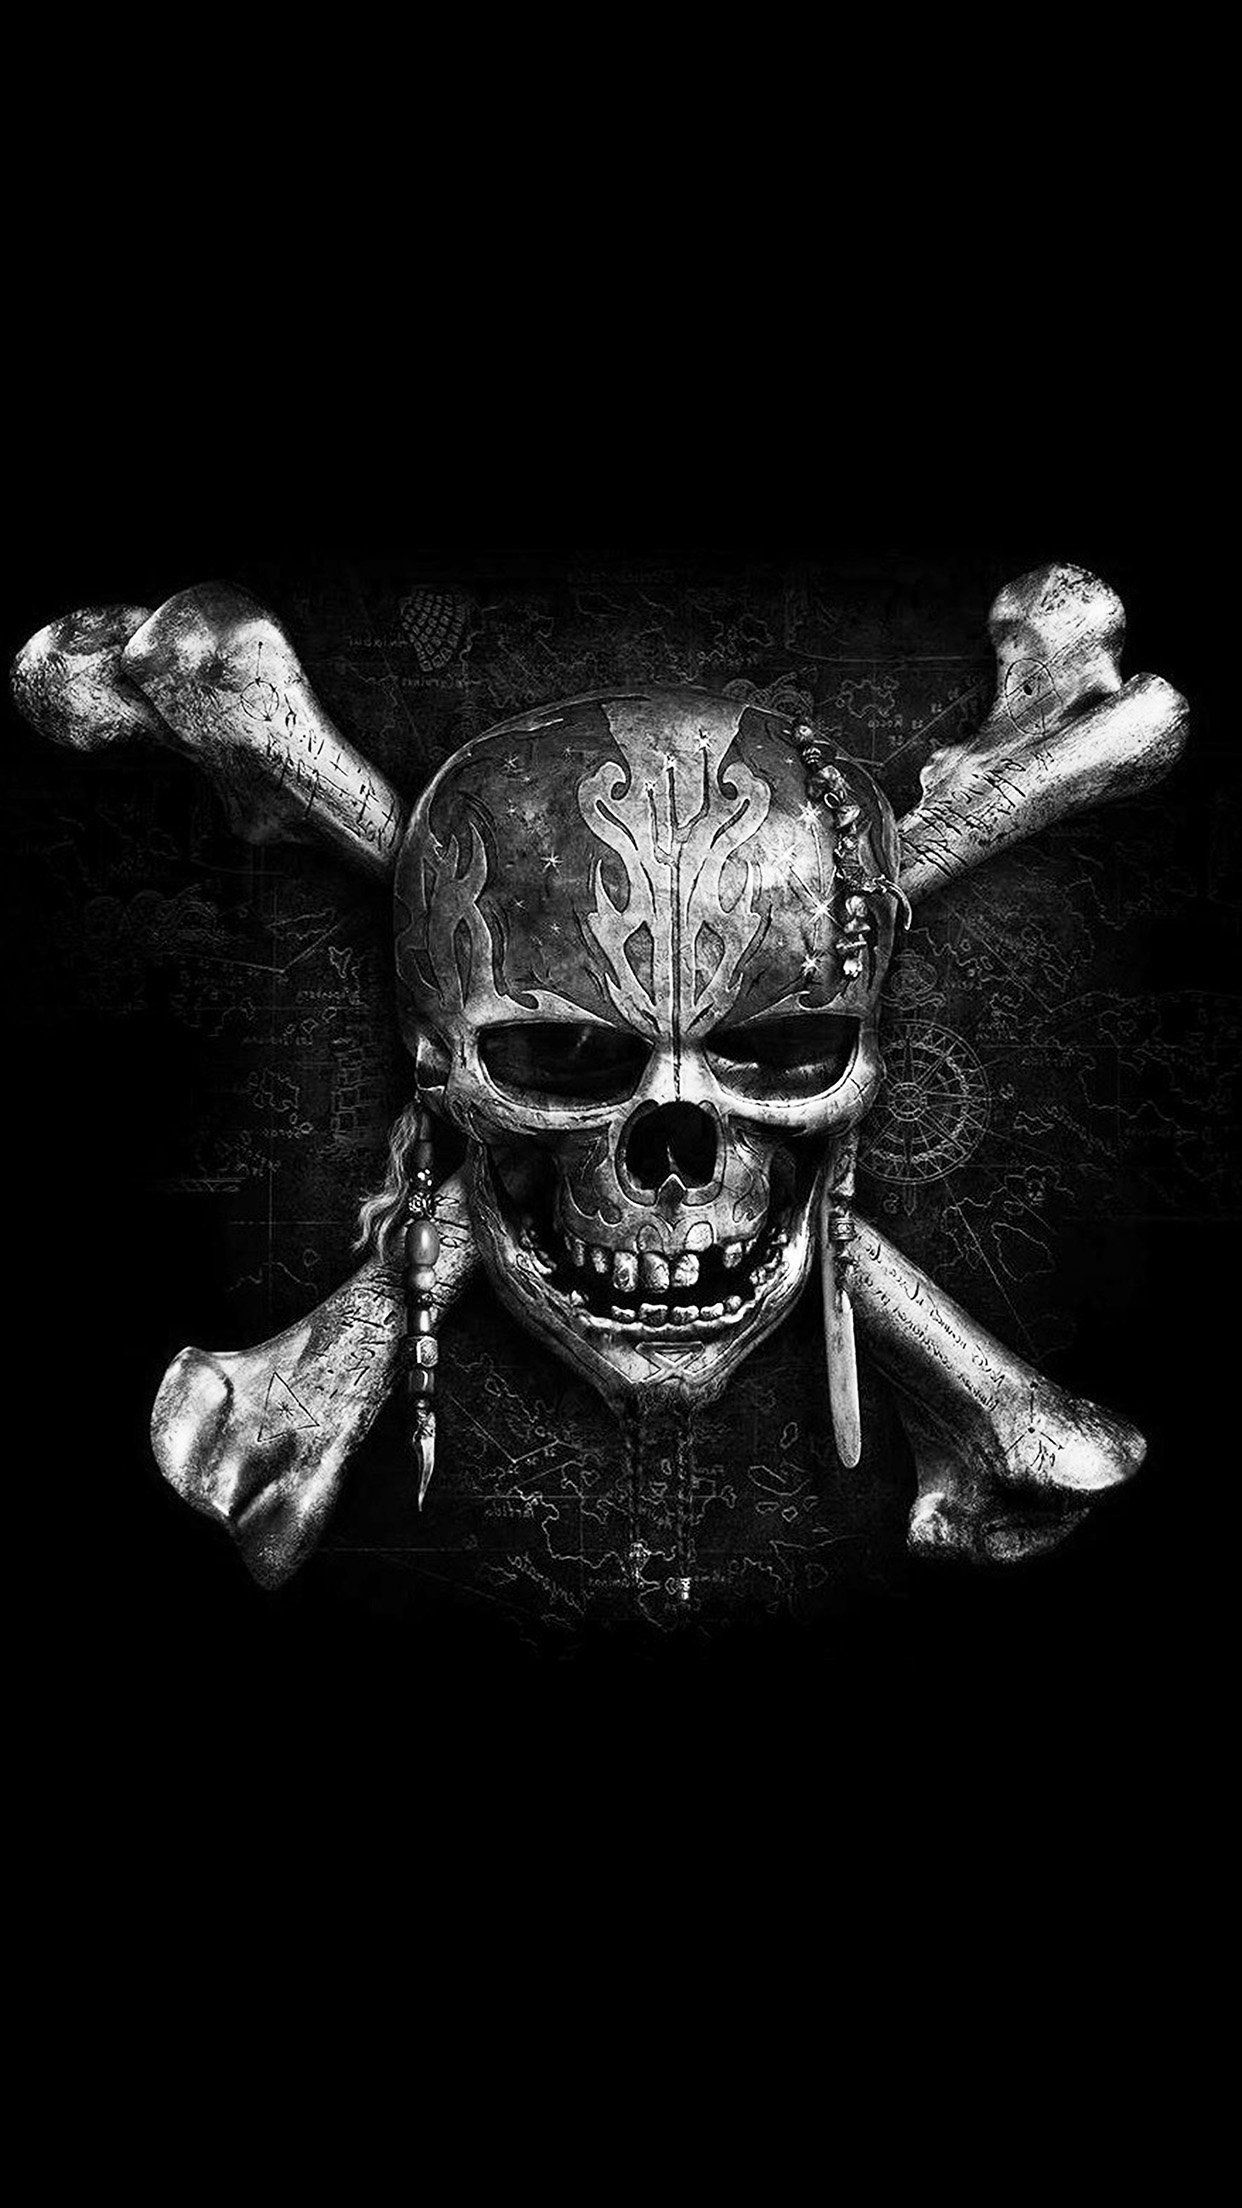 Pirate Iphone Wallpapers Top Free Pirate Iphone